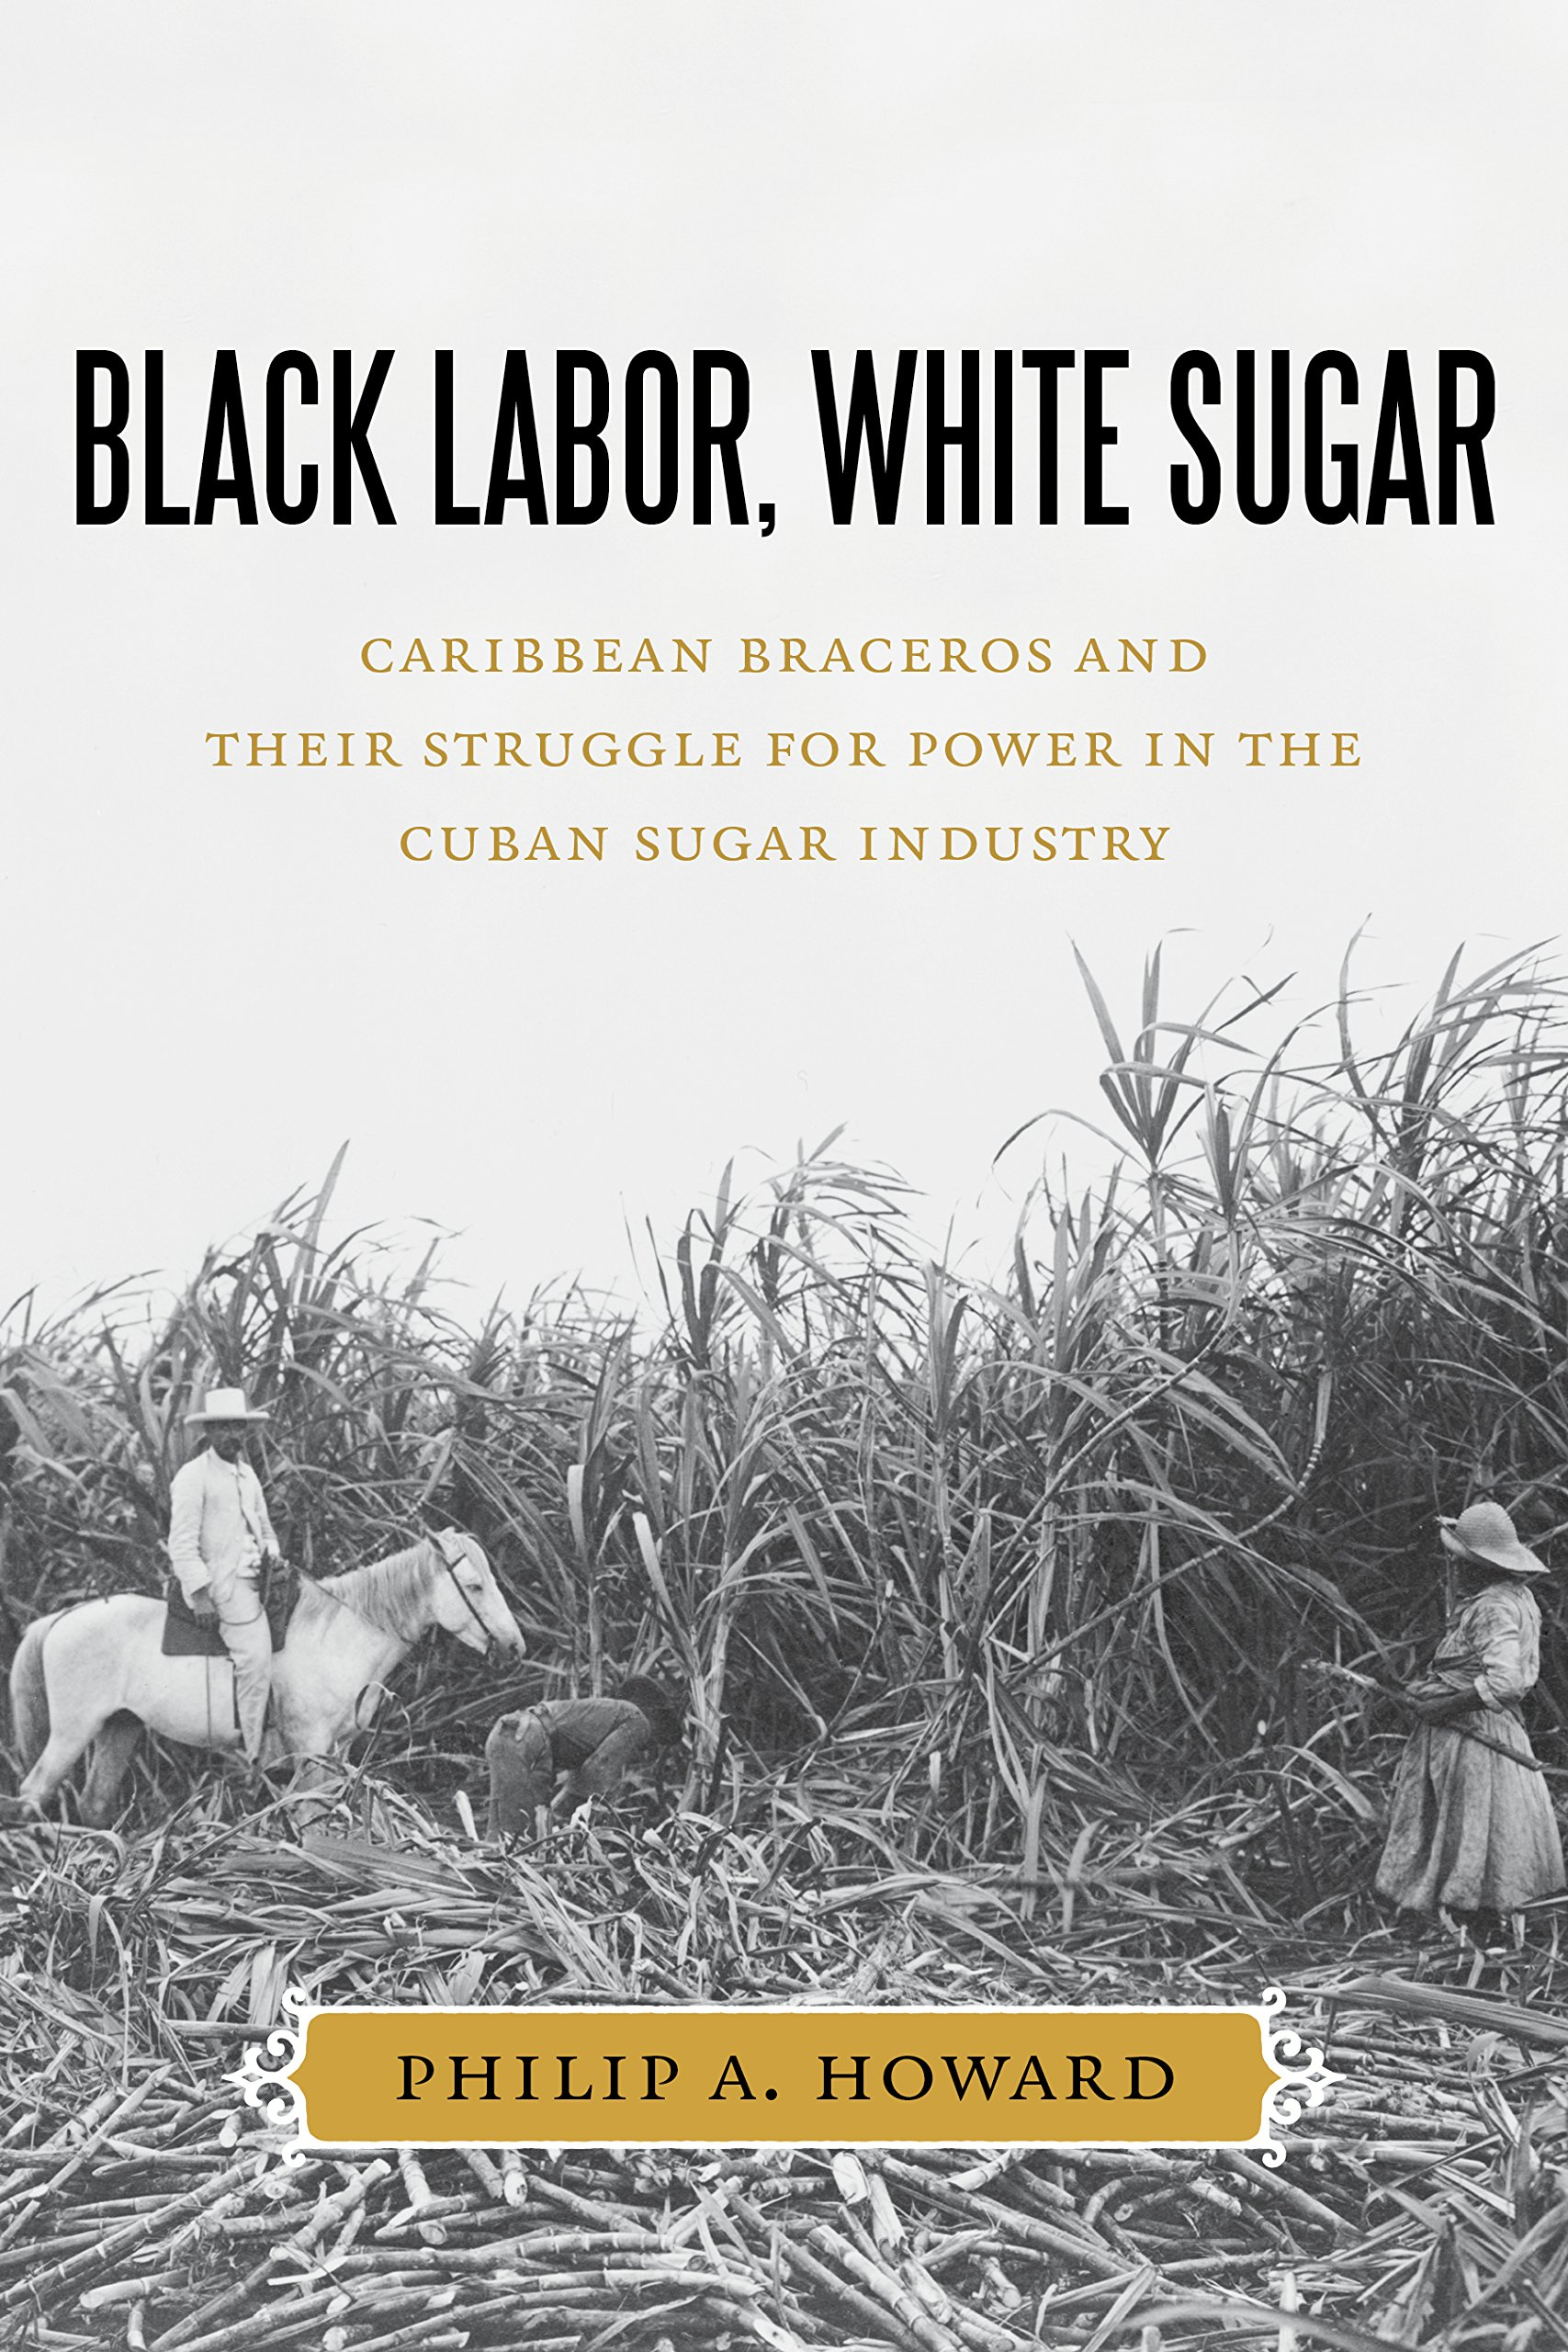 Black Labor, White Sugar: Caribbean Braceros and Their Struggle for Power in the Cuban Sugar Industry PDF